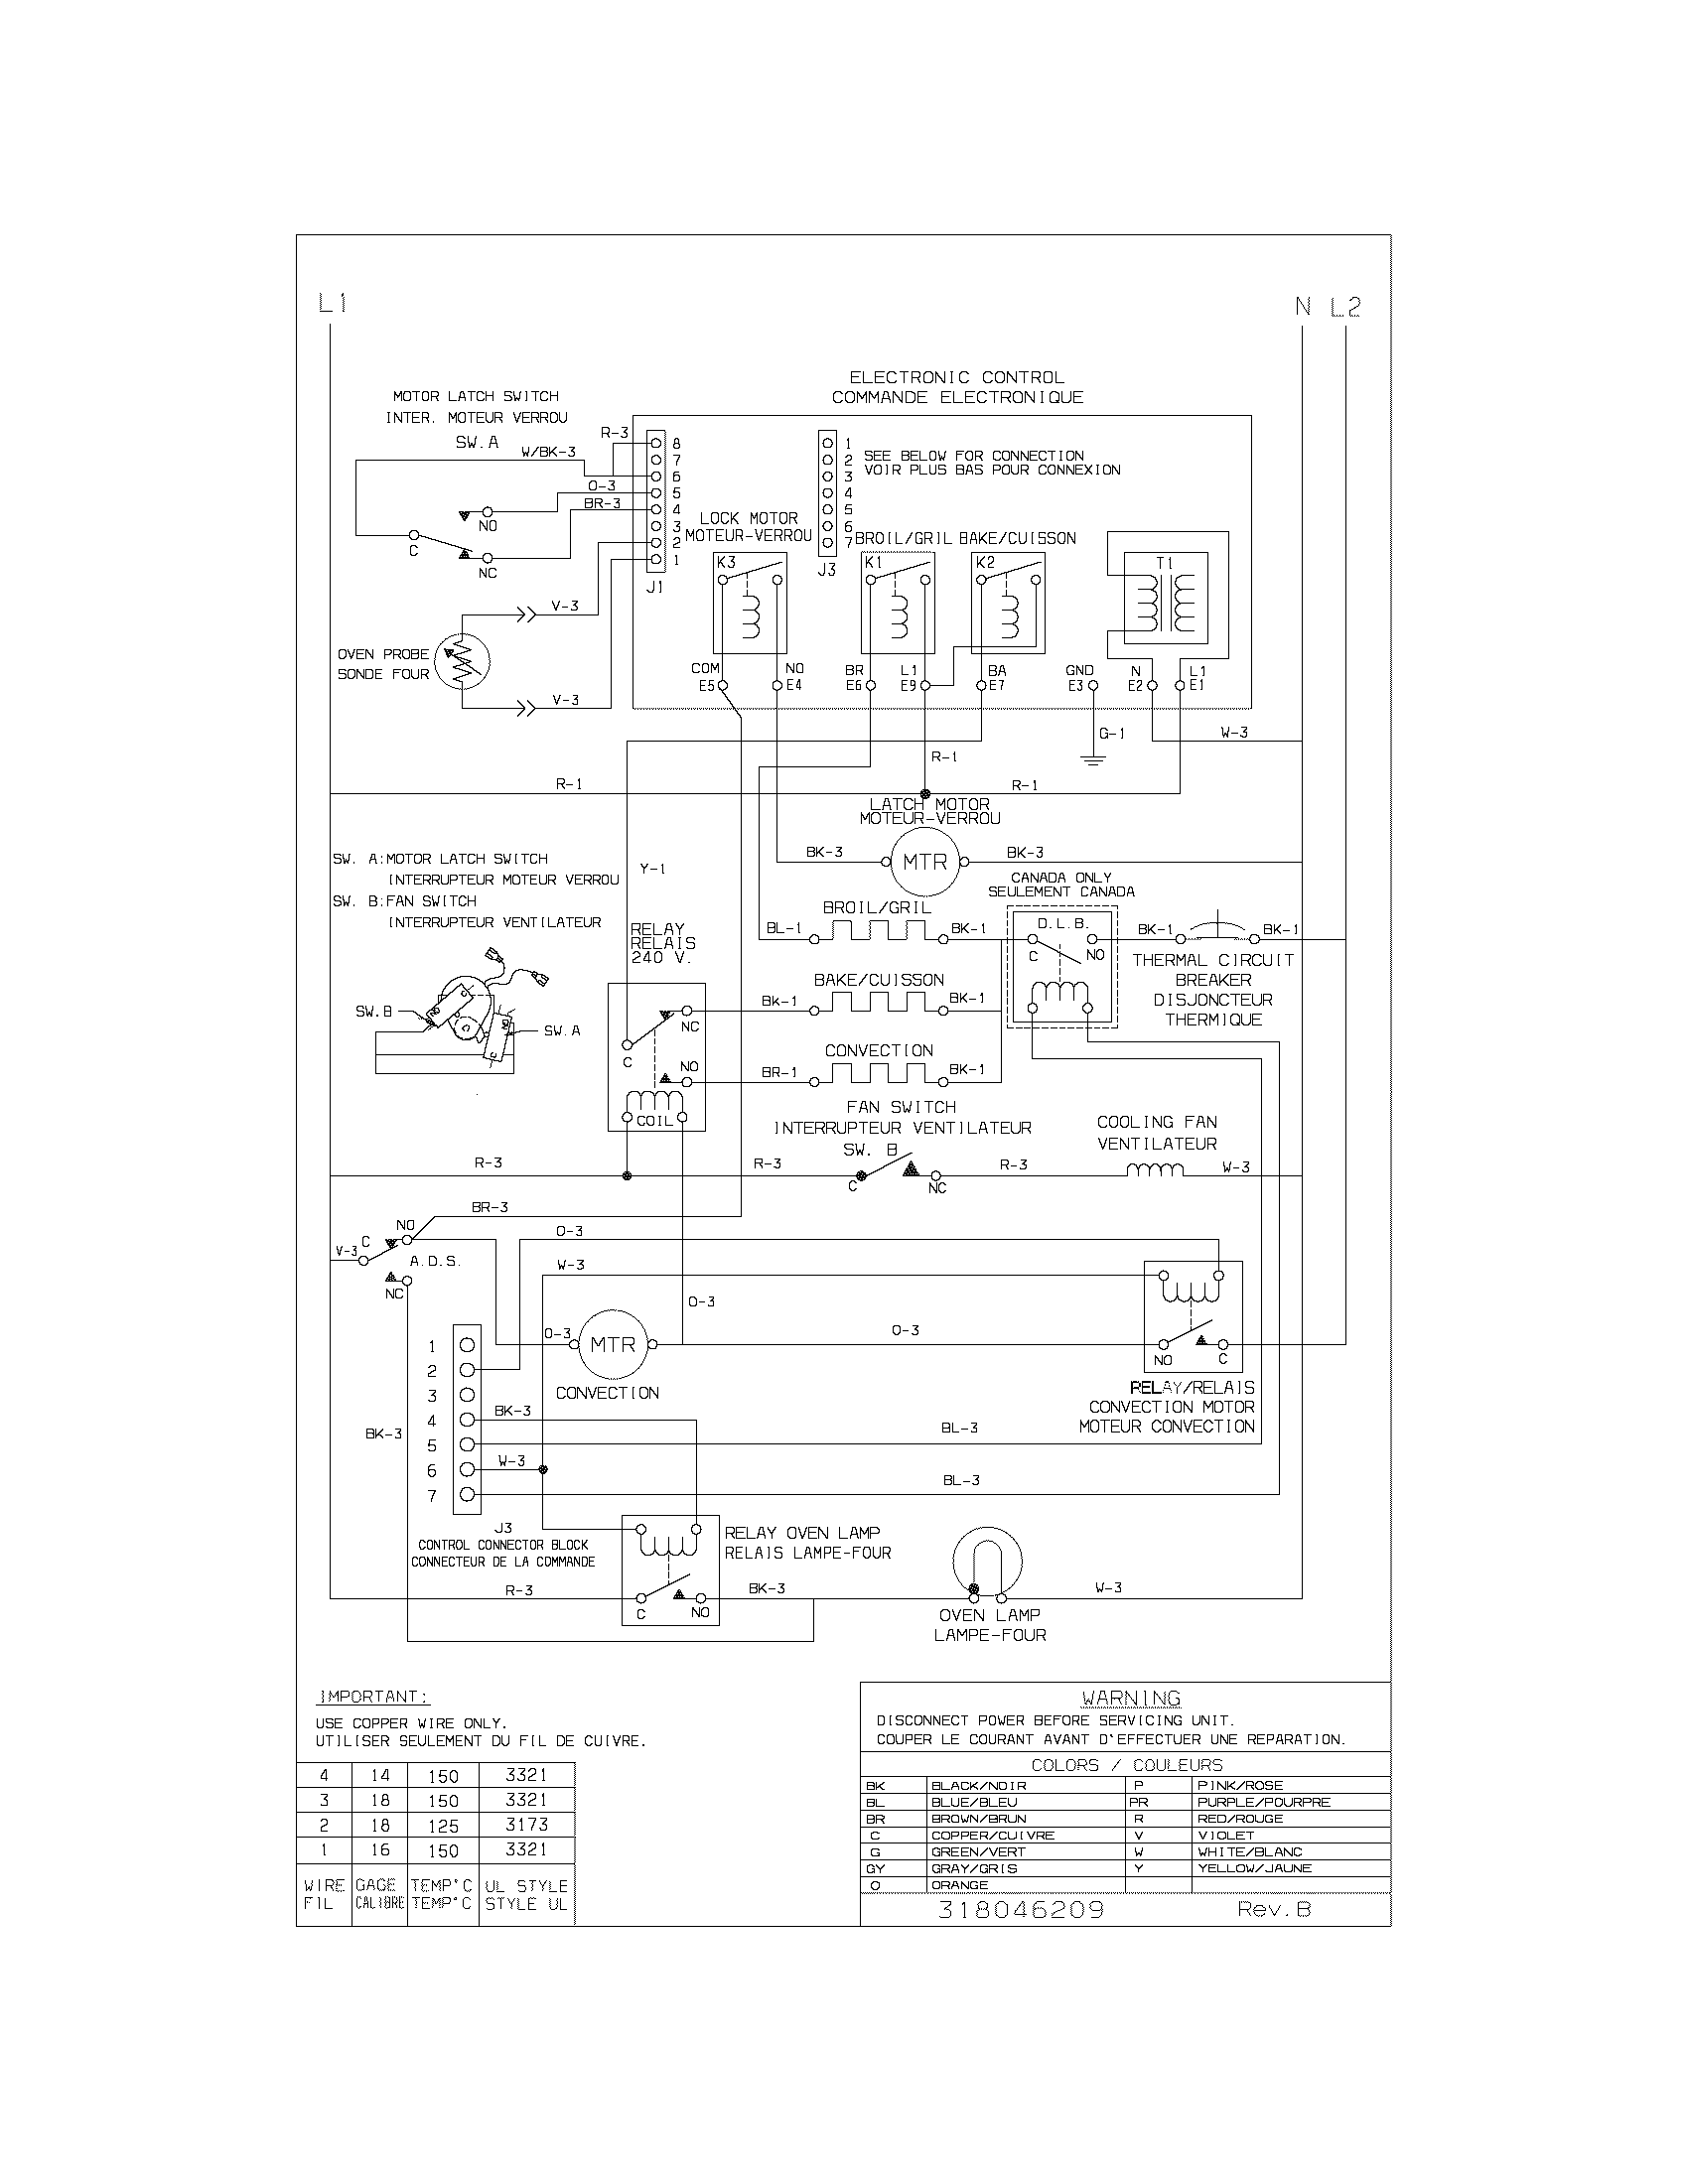 Famous honda vfr800 wiring diagram replace fuse in box